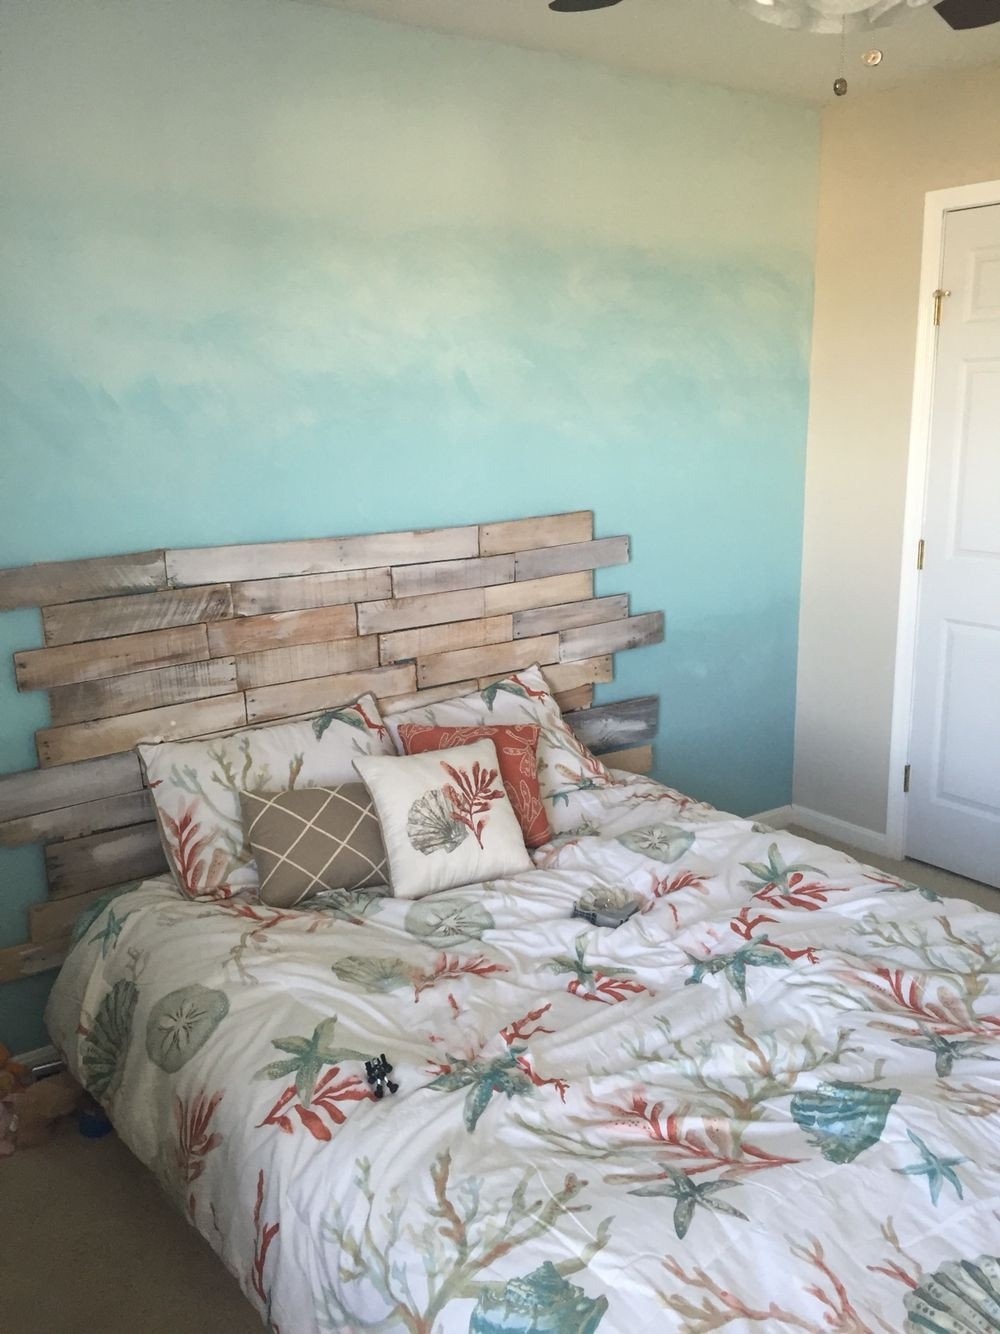 Beach themed Bedroom Furniture Awesome Ombré Ocean Wall Pallet Headboard for A Beach themed Room